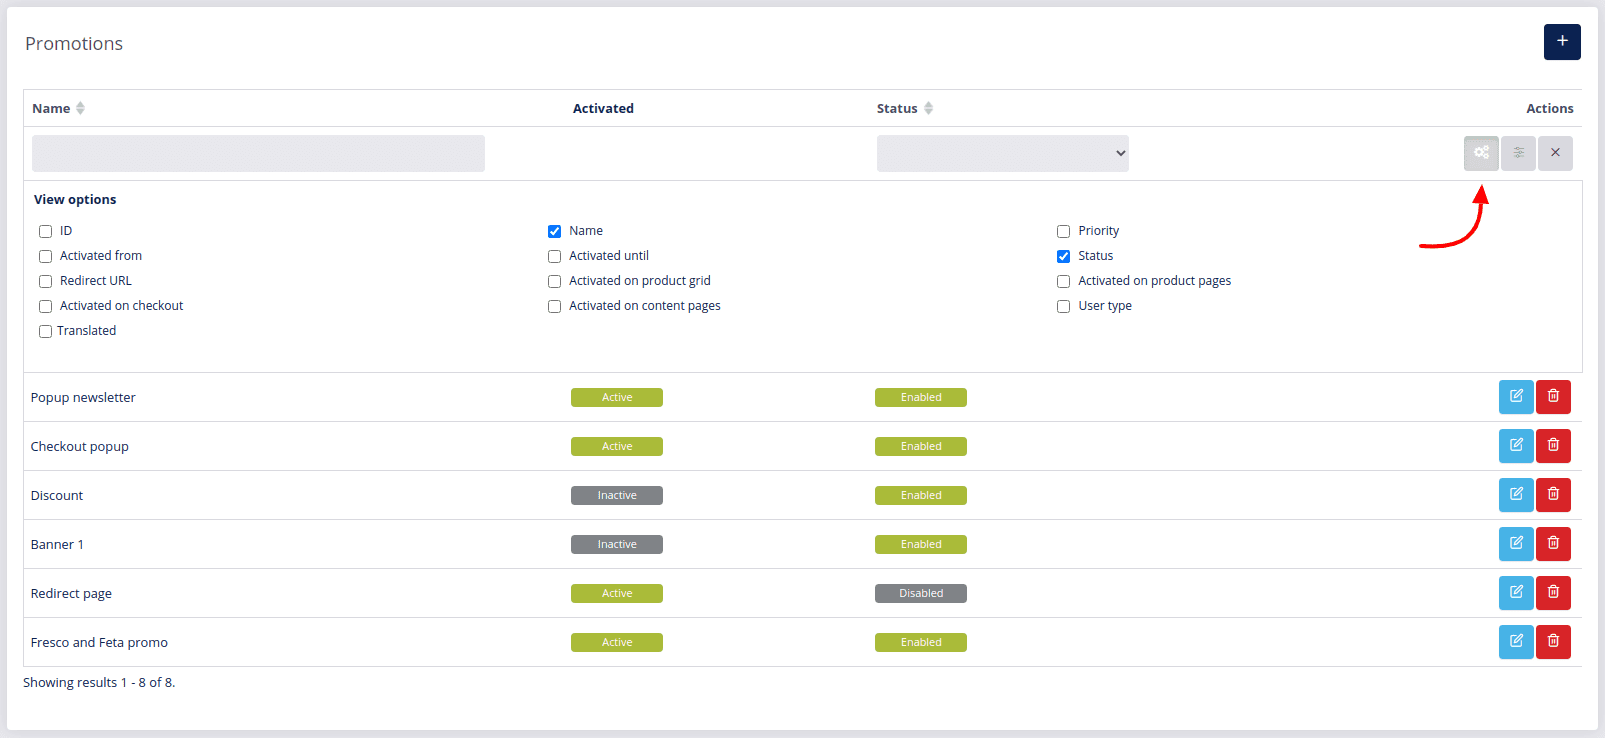 Promotion tools view options